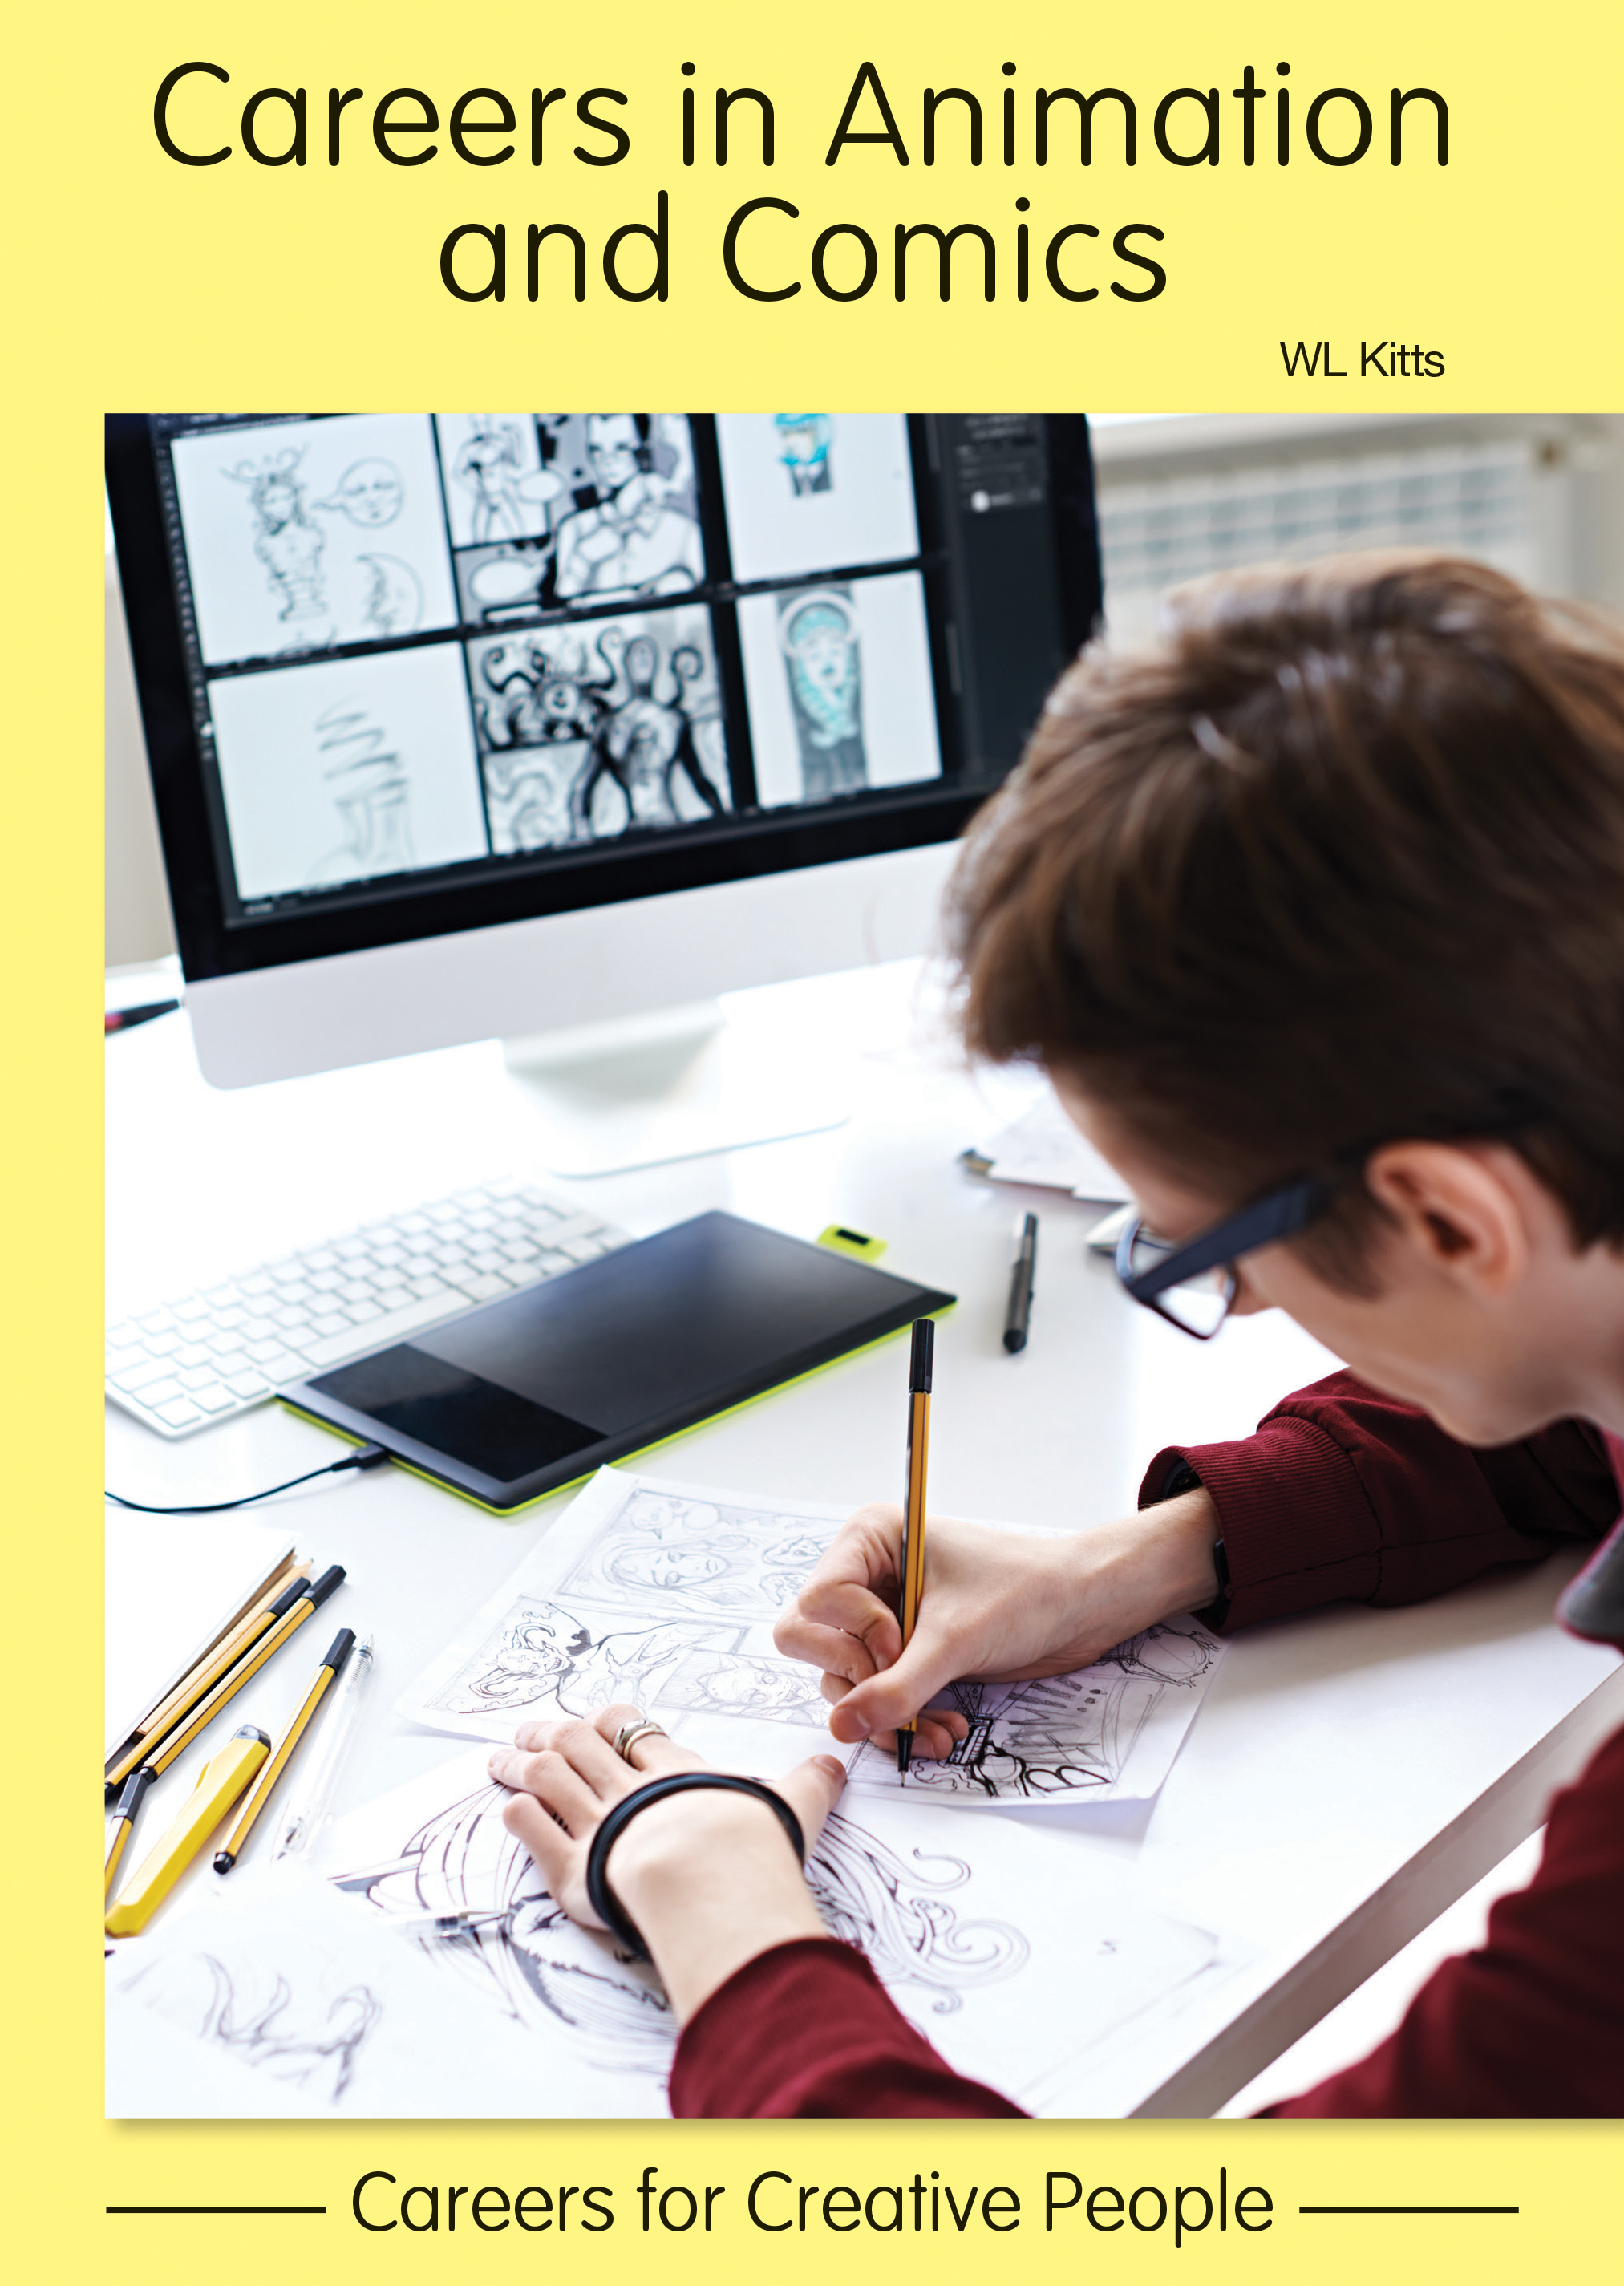 Careers in Animation and Comic Books - ReferencePoint Press (2019)